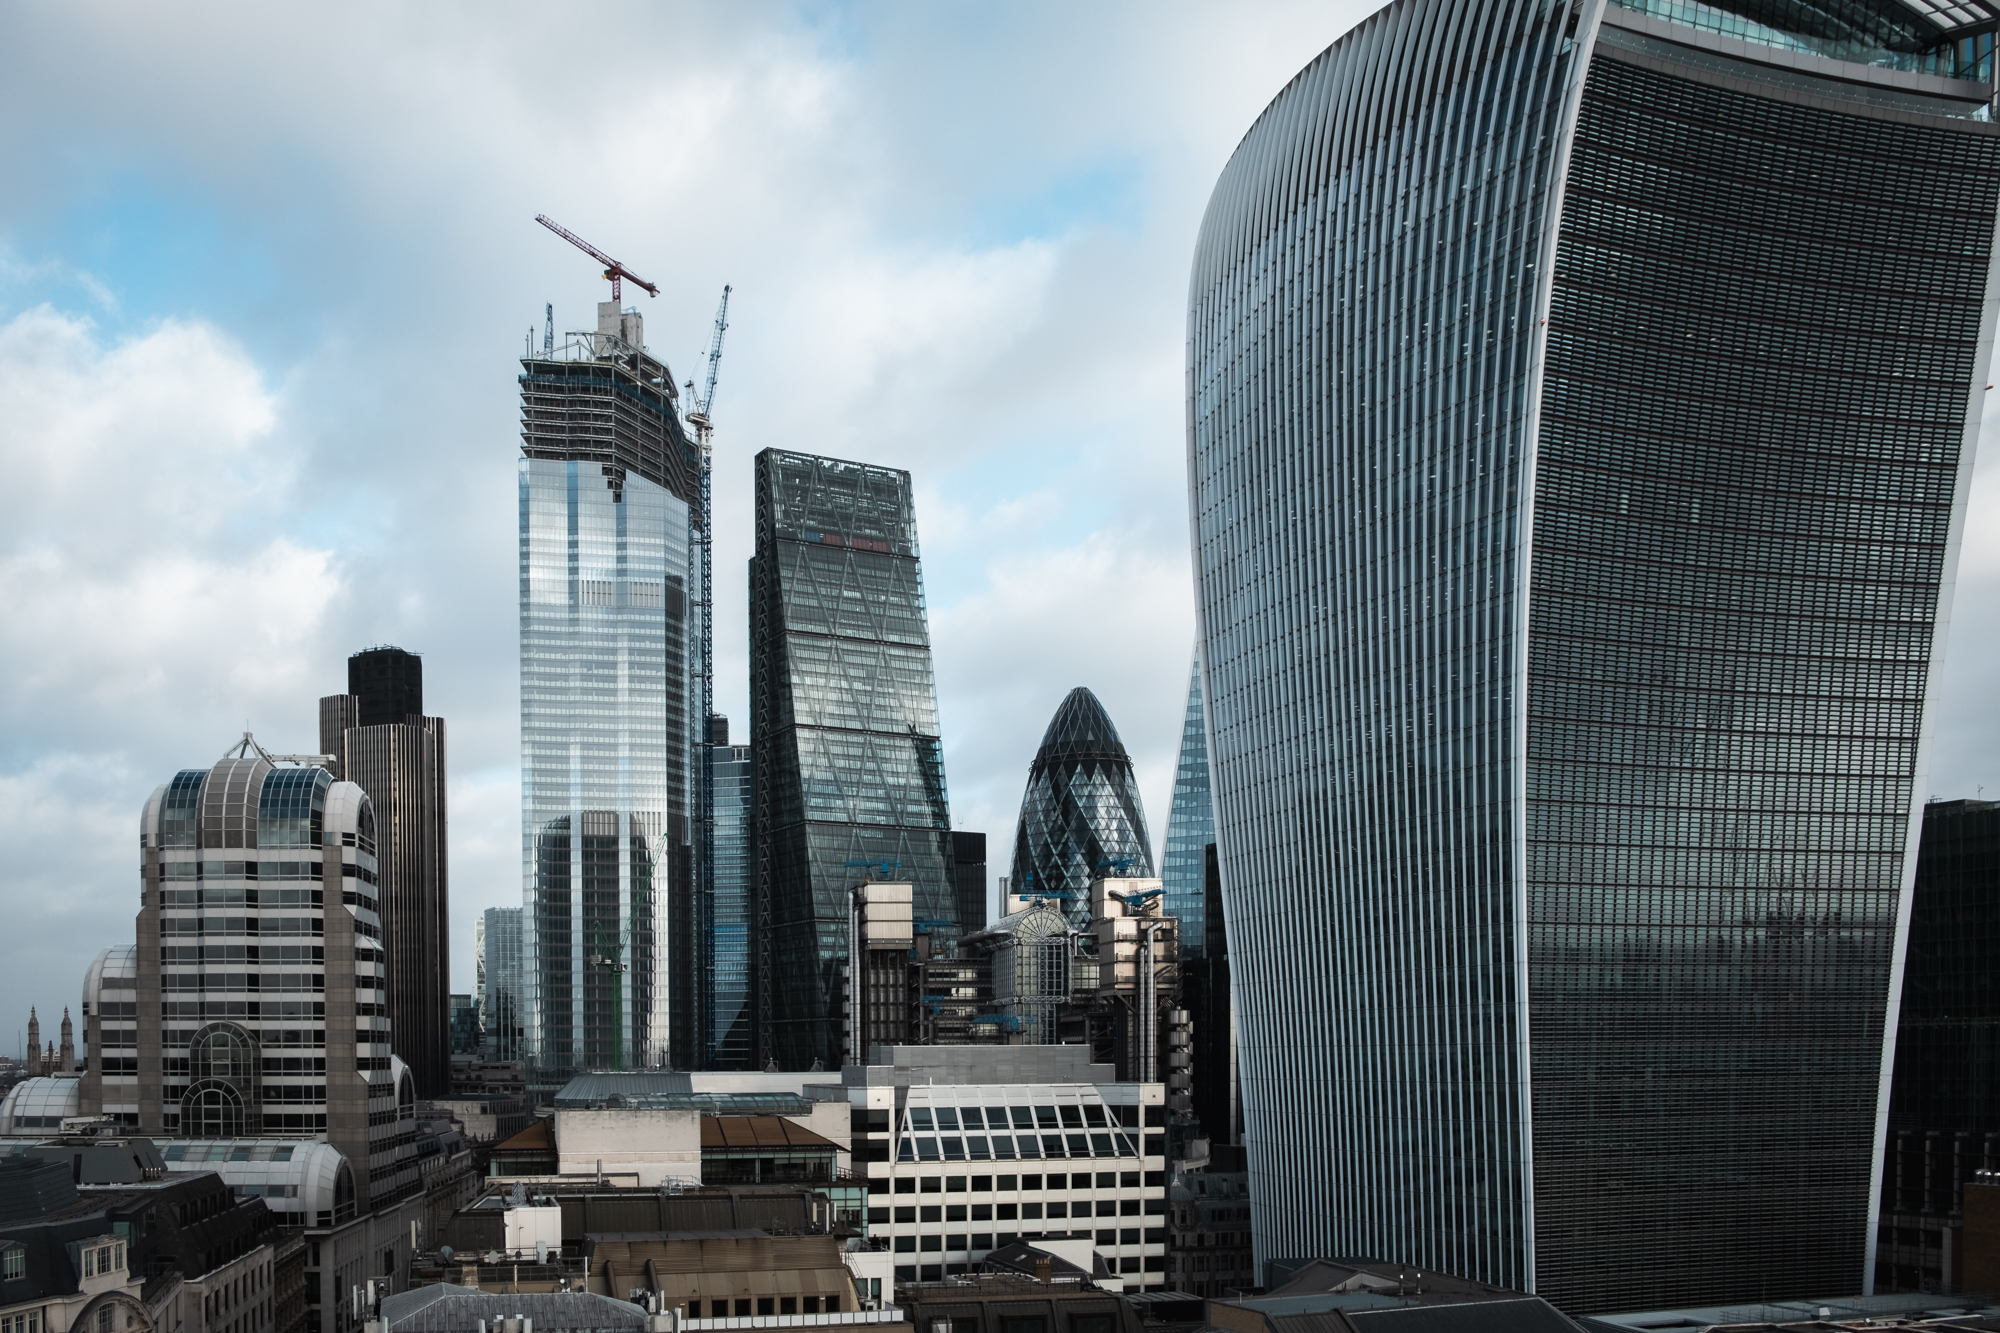 A photo of the city high-rises taken from the top of the Monument in London by Trevor Sherwin Photography